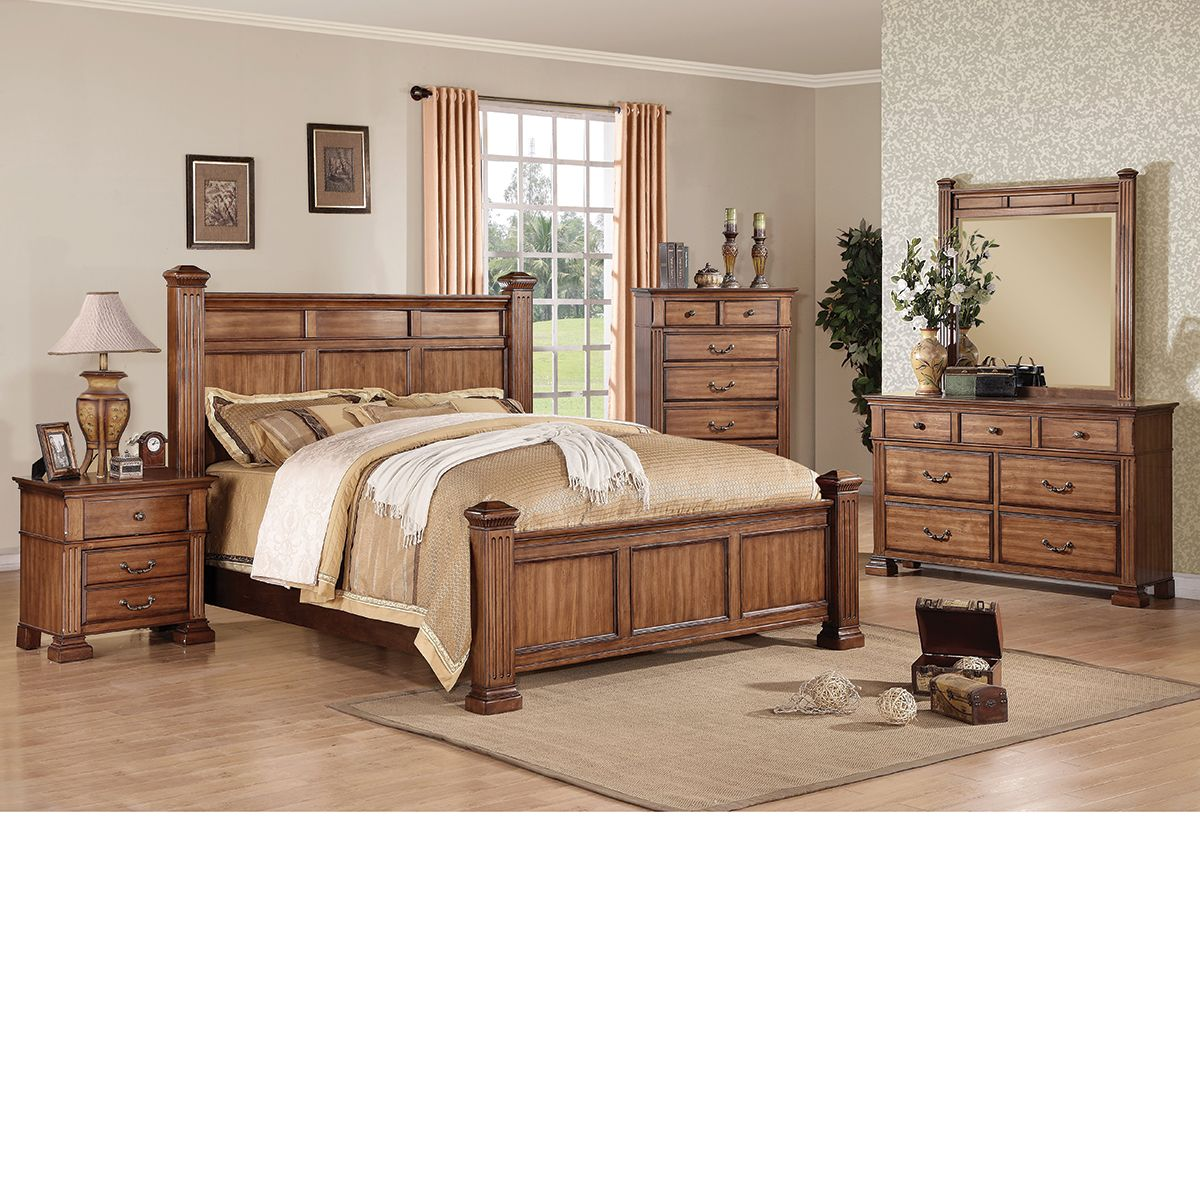 Hunter The Dump Furniture Outlet Wood Bedroom Sets Oak Bedroom Furniture Sets Wood Bedroom Furniture Sets